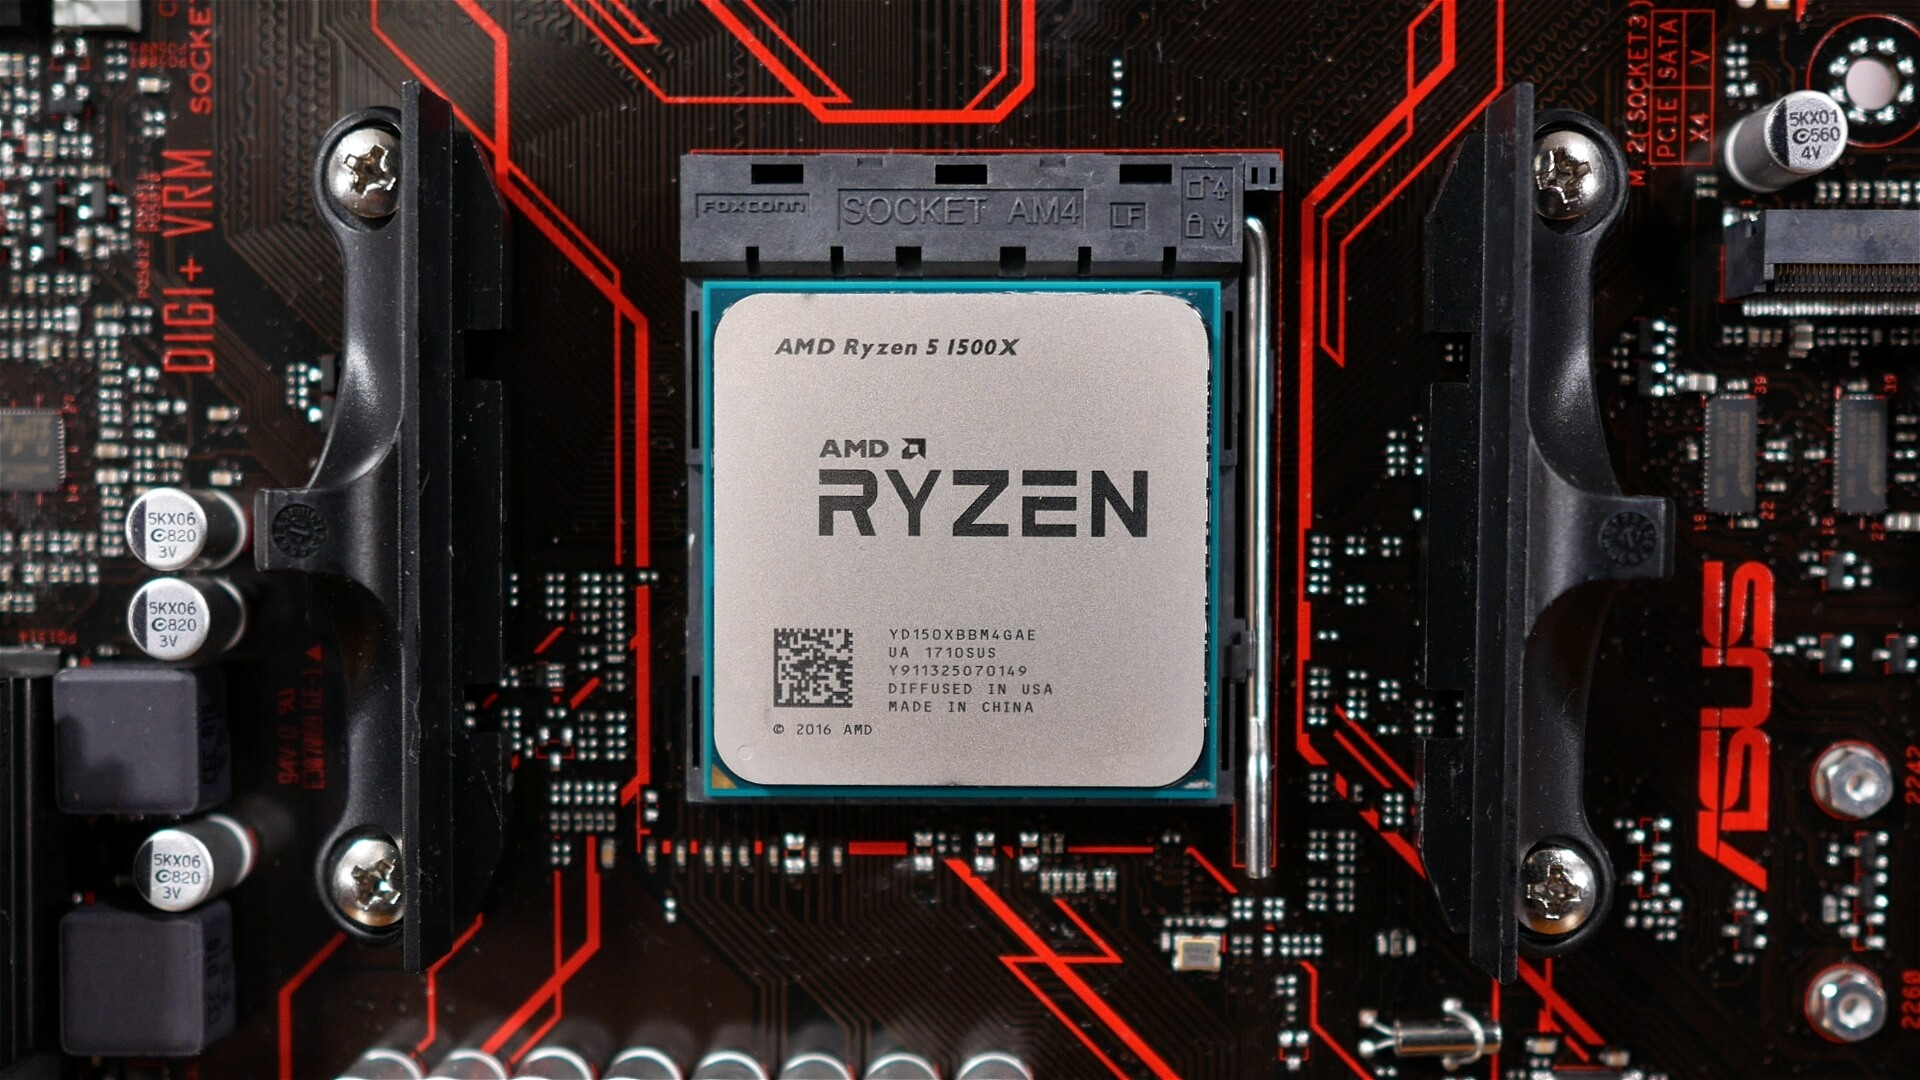 Flaws in AMD chips make hacks worse